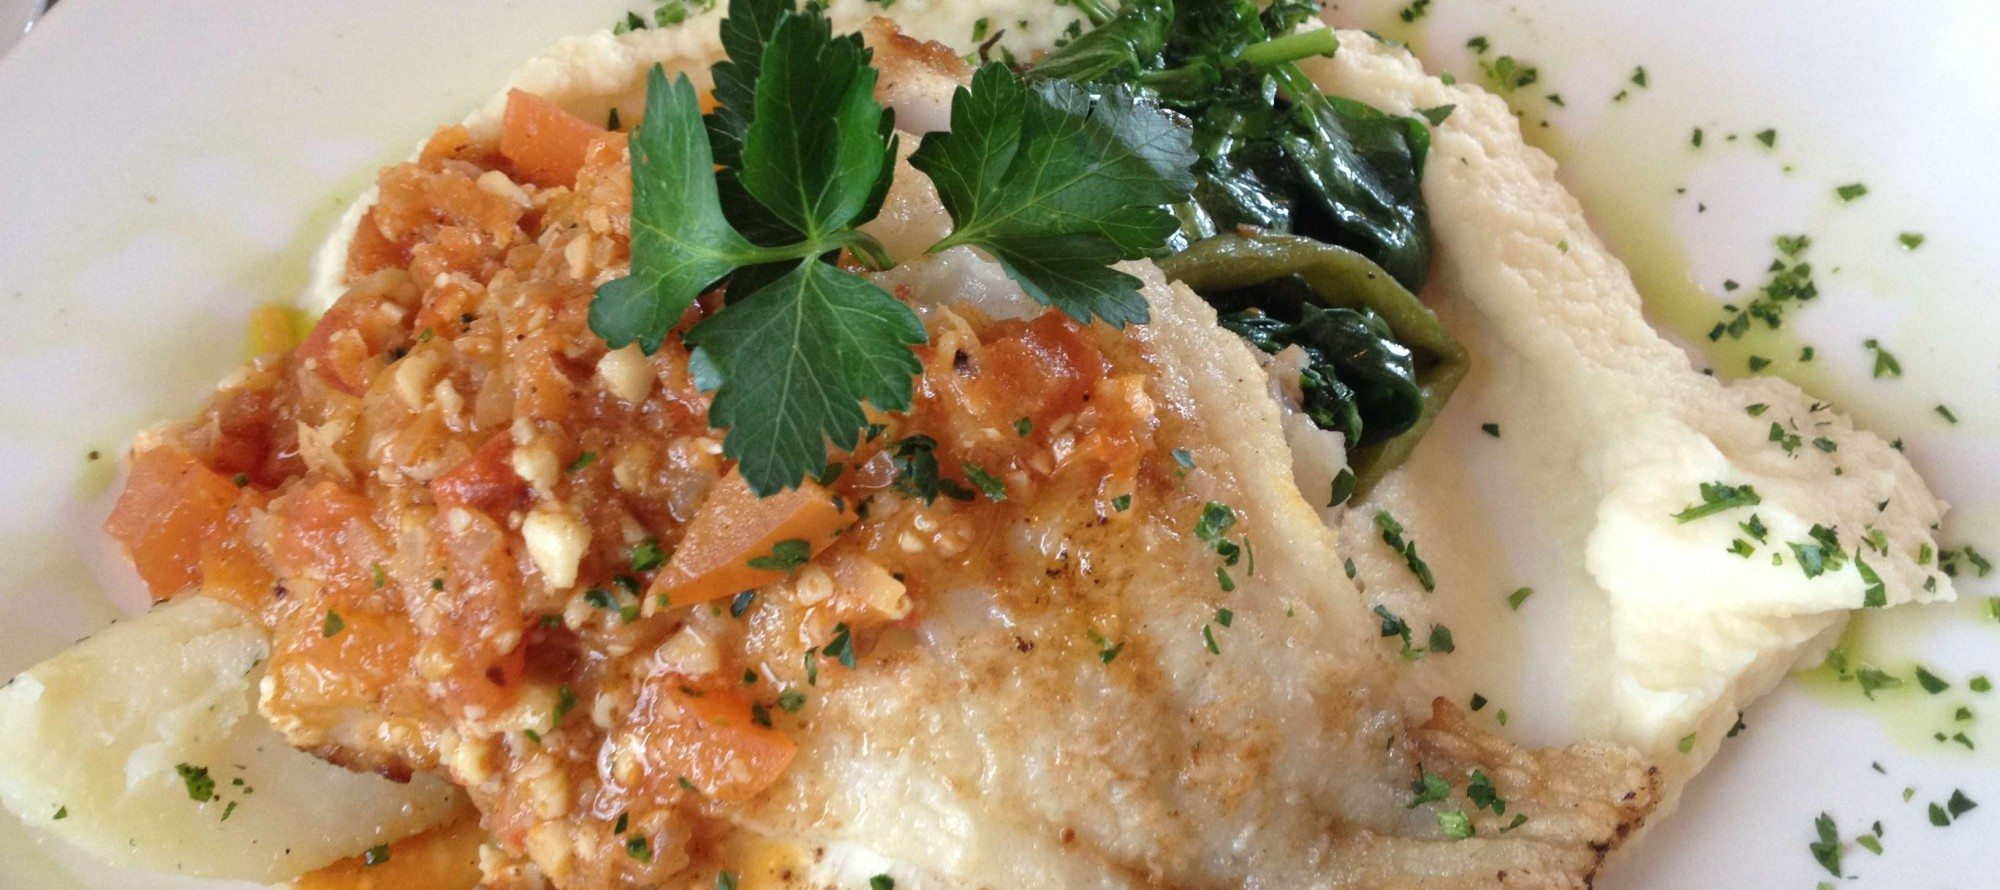 WEEKLY LUNCH PICK: New ownership, same delicious roasted cod at El Meson